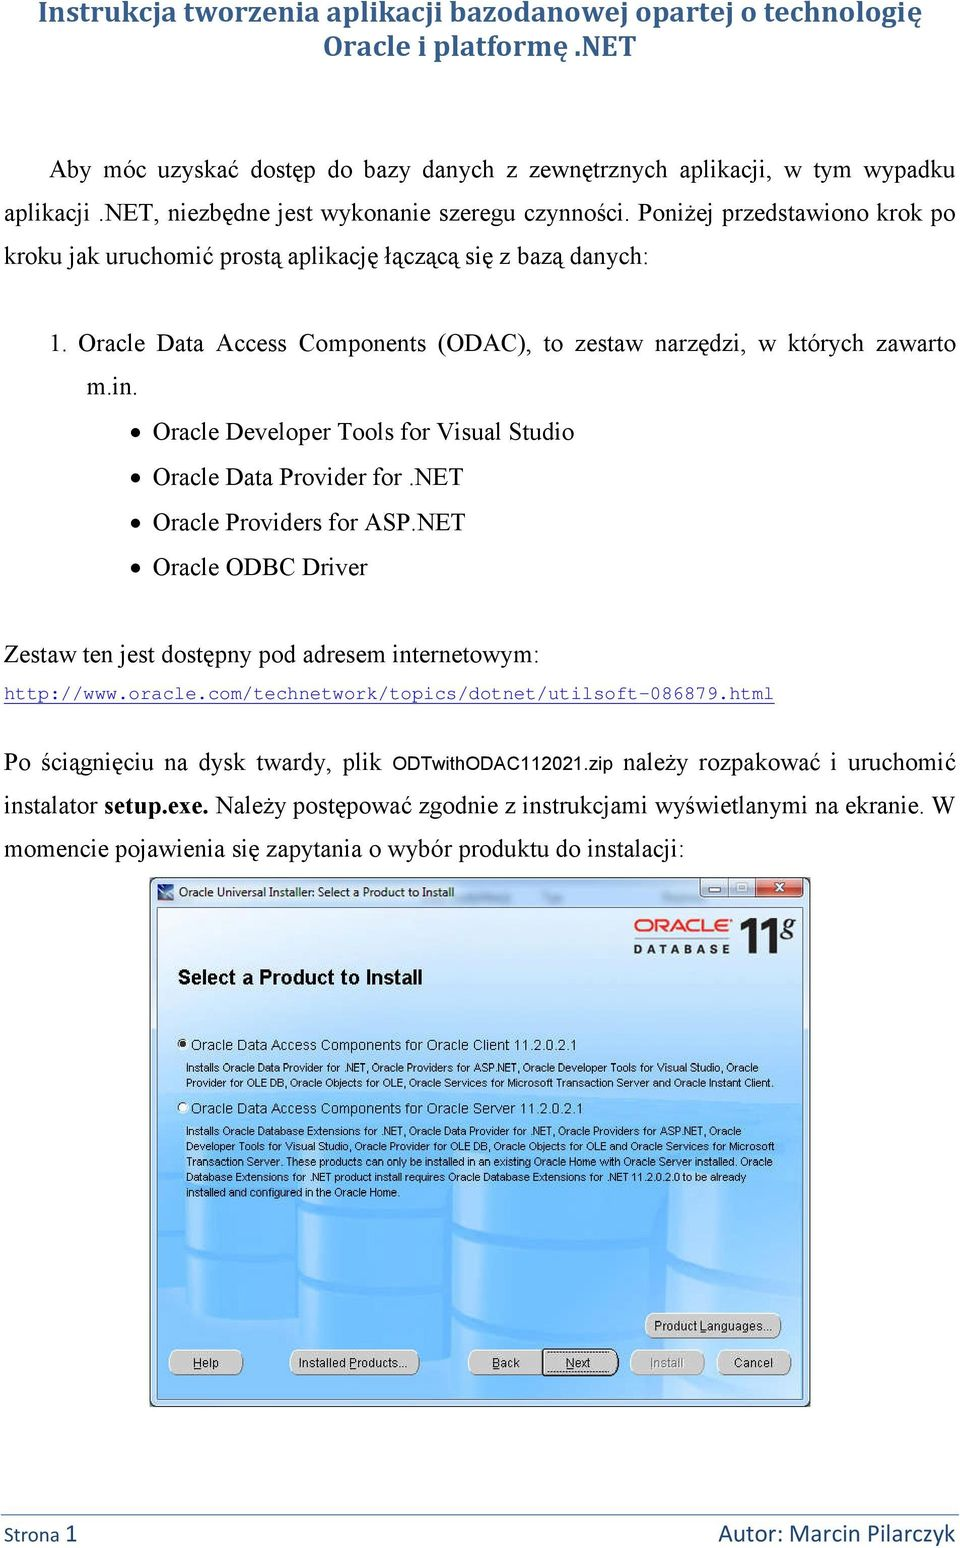 Oracle Data Access Components (ODAC, to zestaw narzędzi, w których zawarto m.in. Oracle Developer Tools for Visual Studio Oracle Data Provider for.net Oracle Providers for ASP.